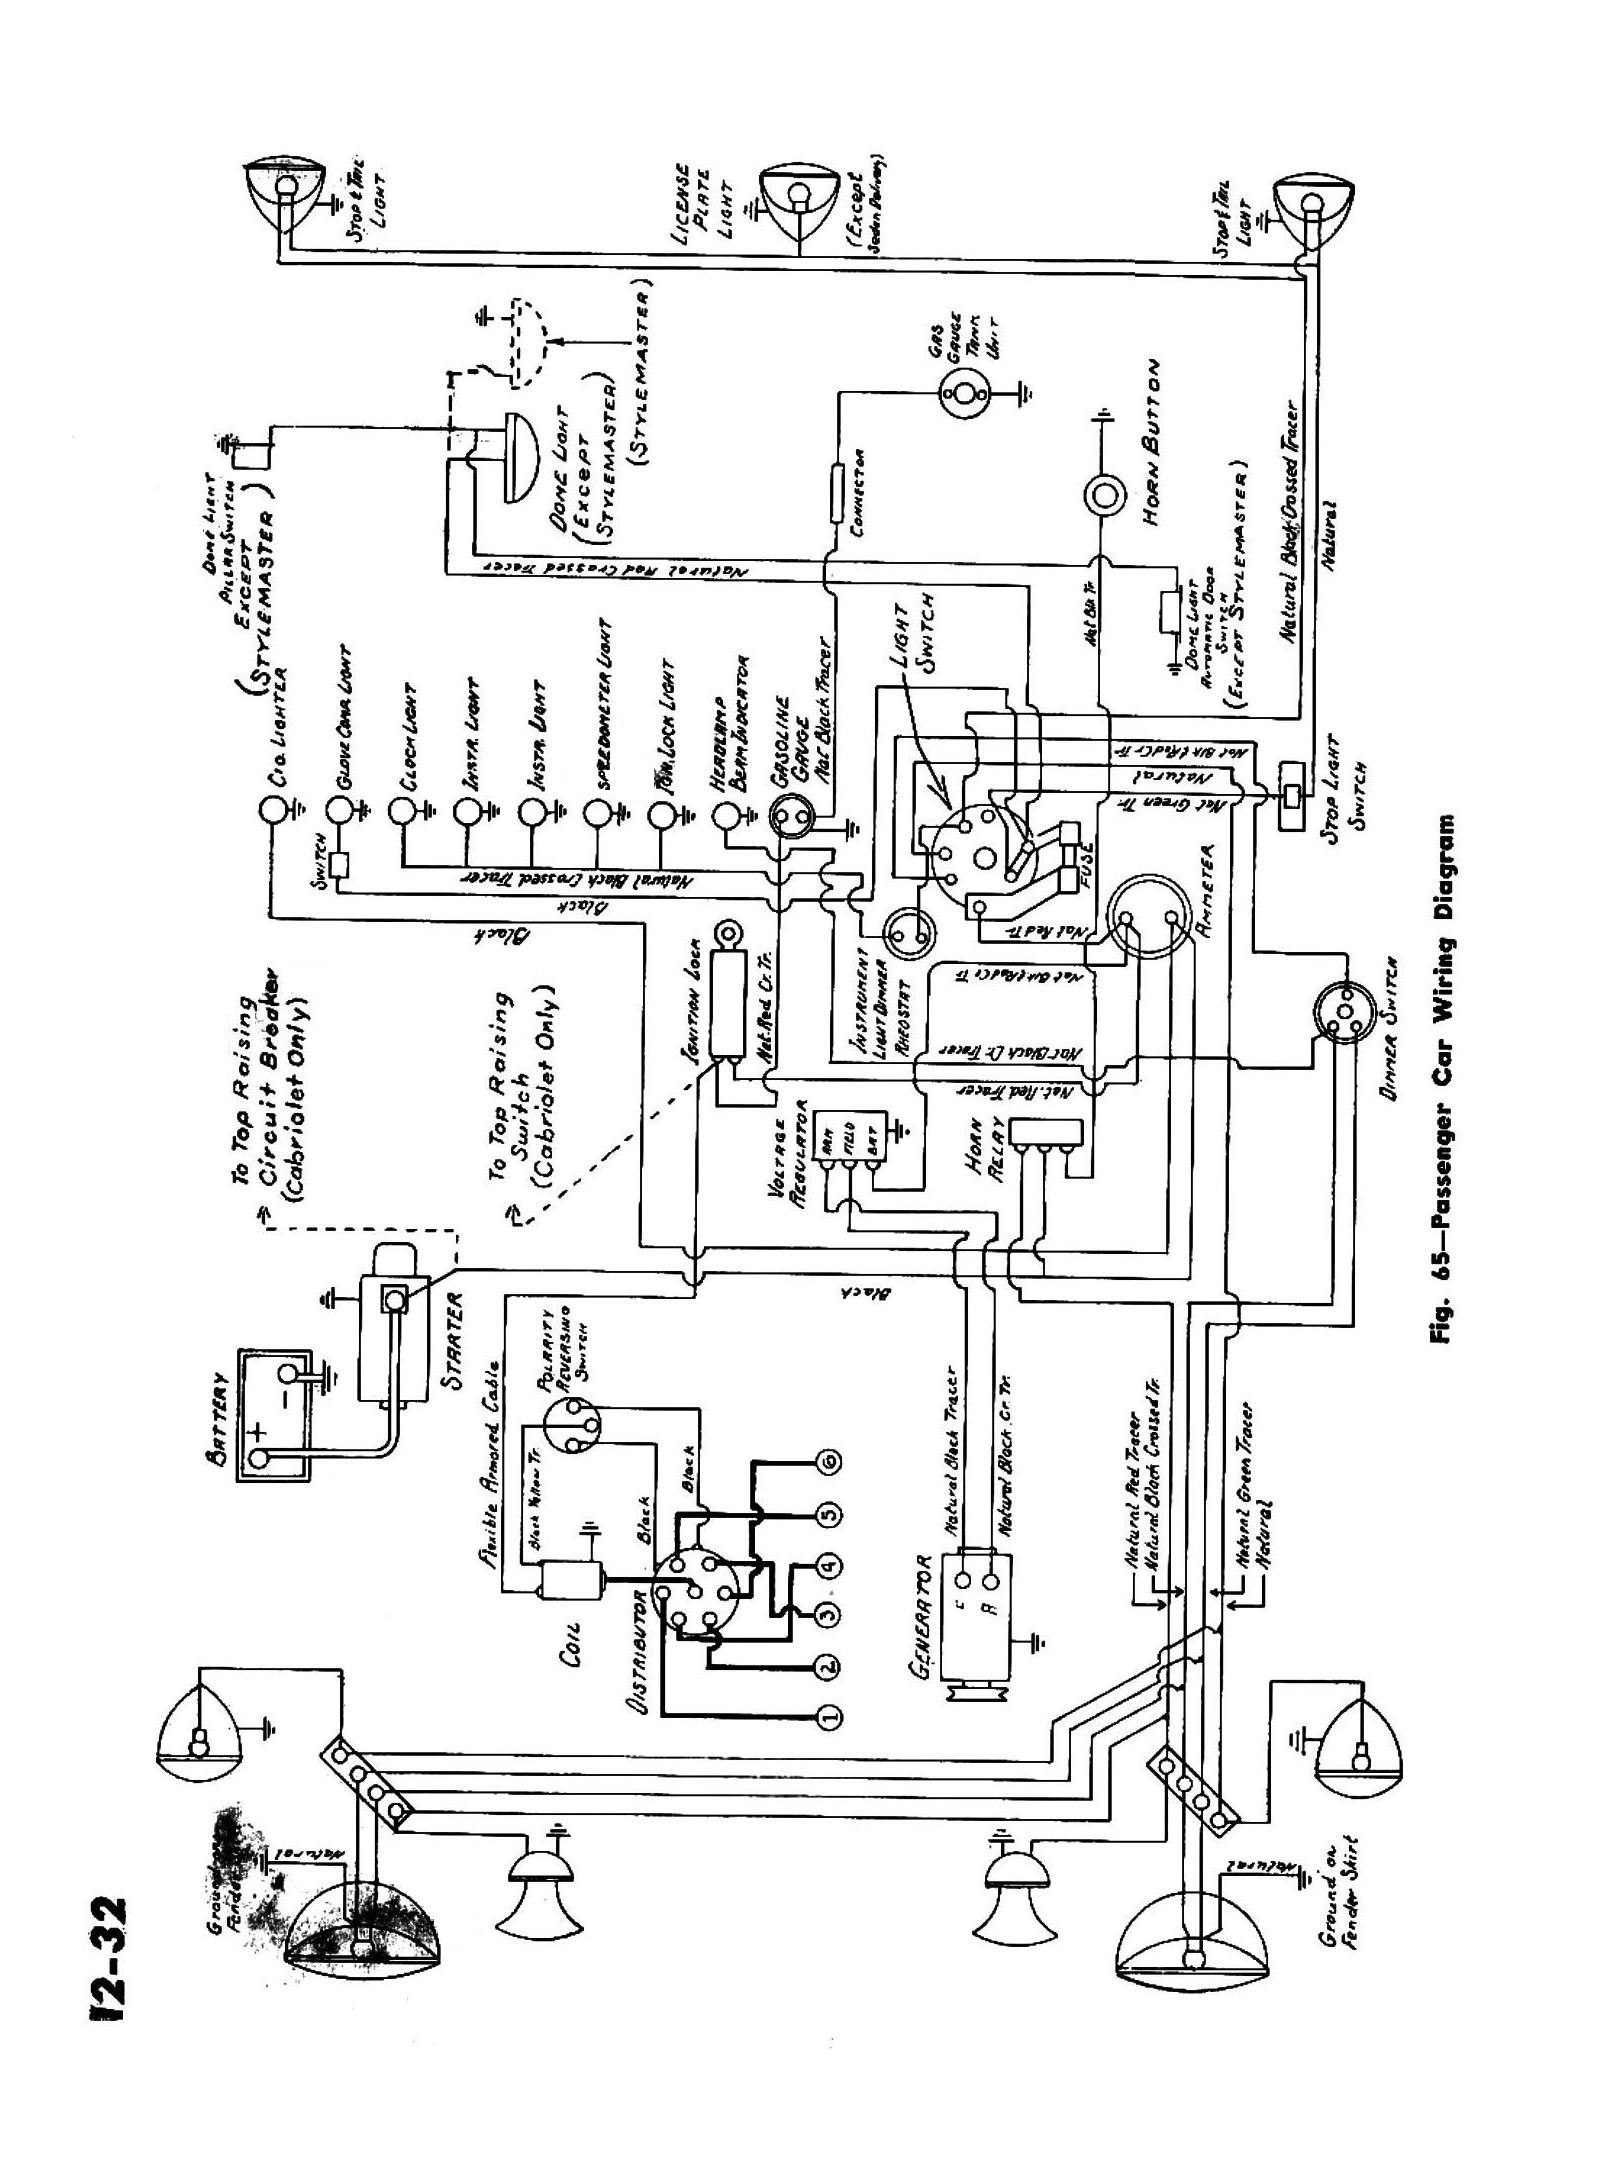 1946, 1946 Car Wiring · 1946 Passenger Car Wiring ...